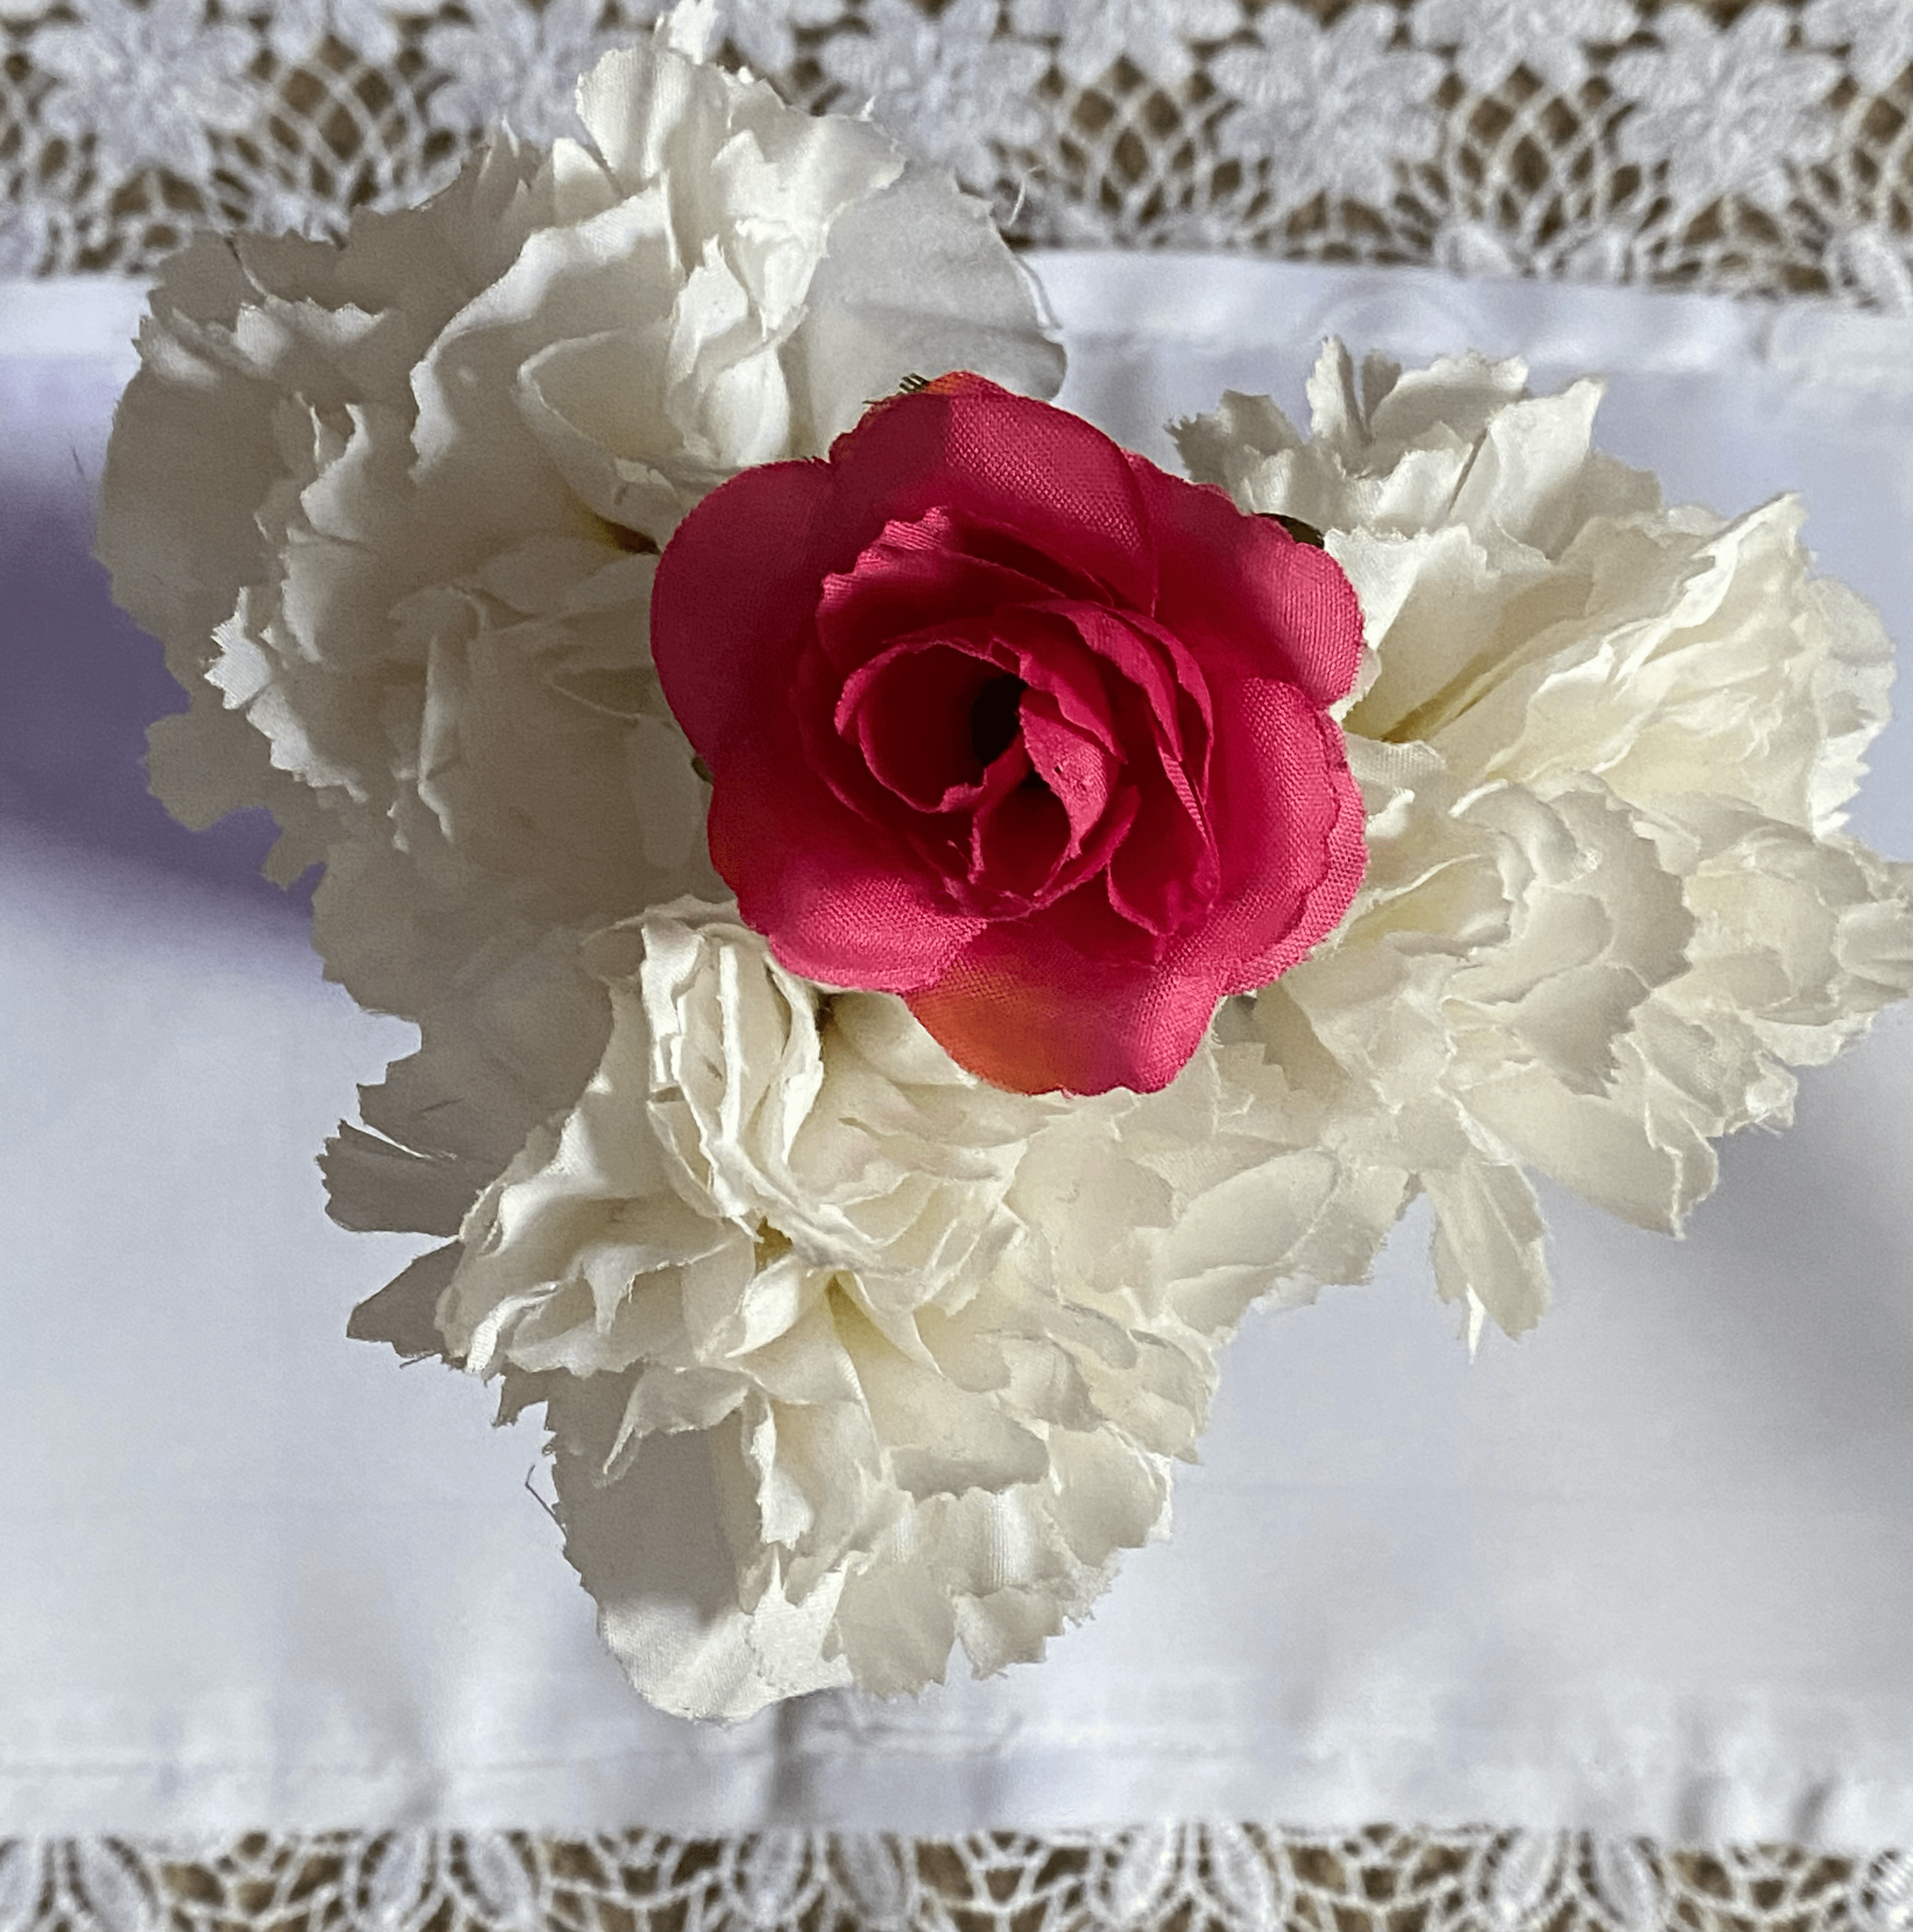 Photo of an artificial rose surrounded by white flowers on a table. Photo courtesy of the author.